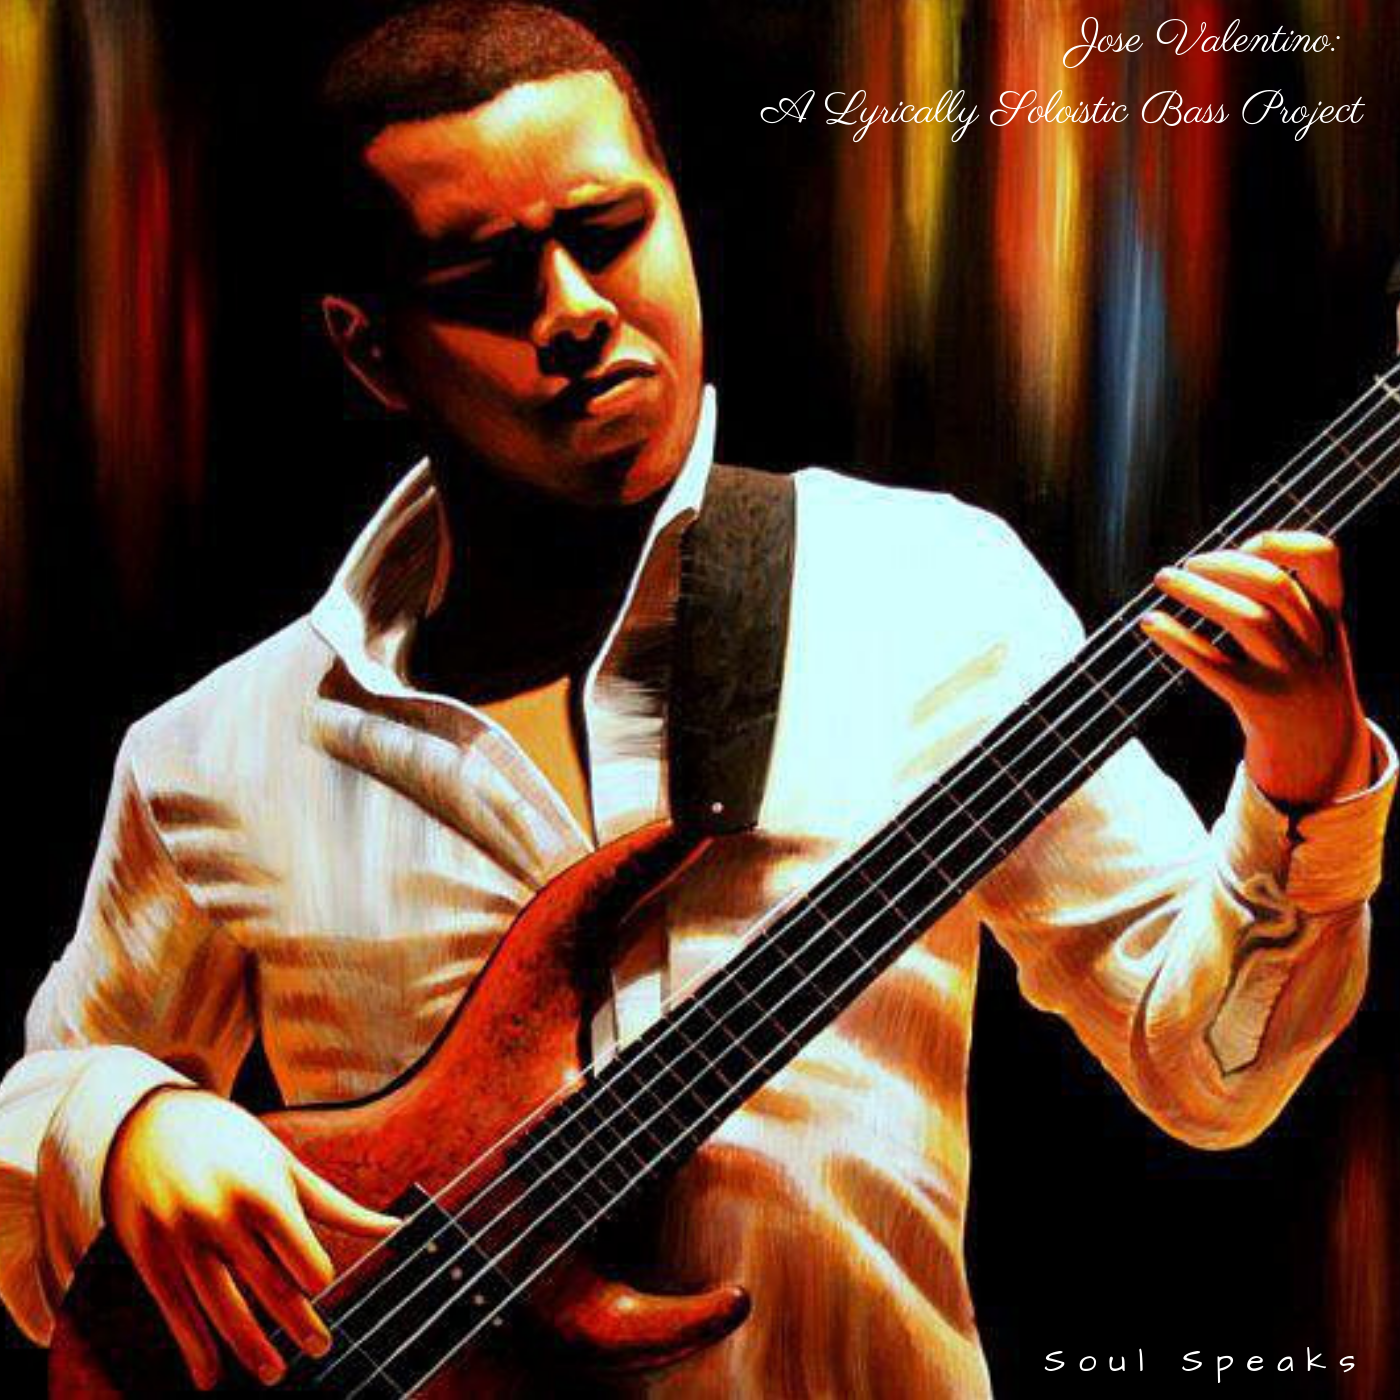 A one-of-a-kind bass guitar album that won numerous DownBeat Student Music Awards! This album showcases José's unique virtuosity and expressivity on the electric bass guitar and acoustic bass. This album has been regard as one of the top solo bass albums of the post-modern era.